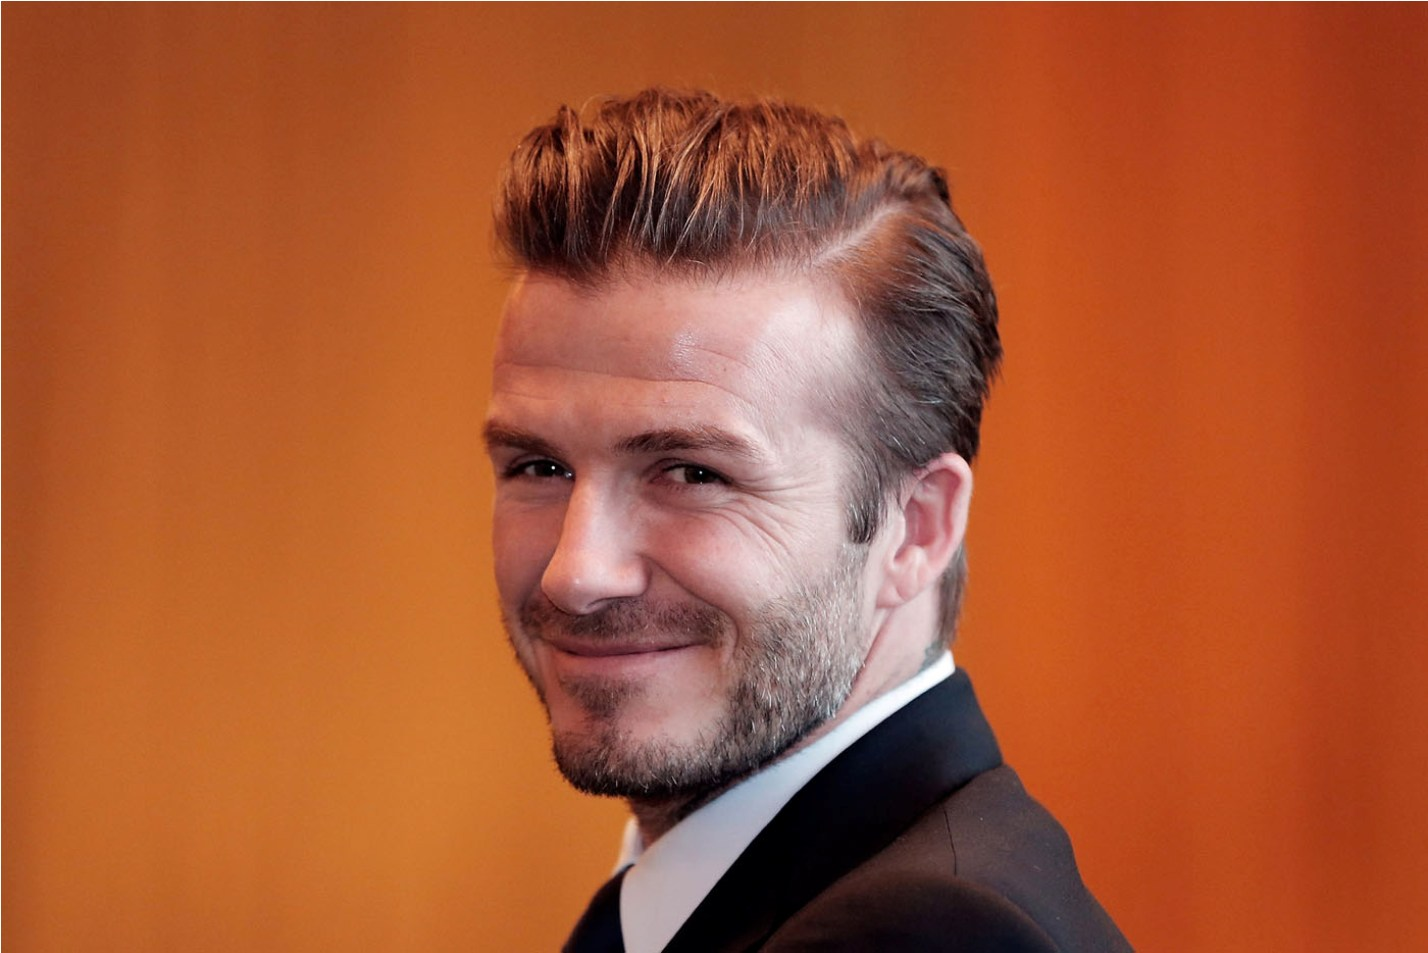 David beckham hairstyle 2013 download cool hd wallpapers here